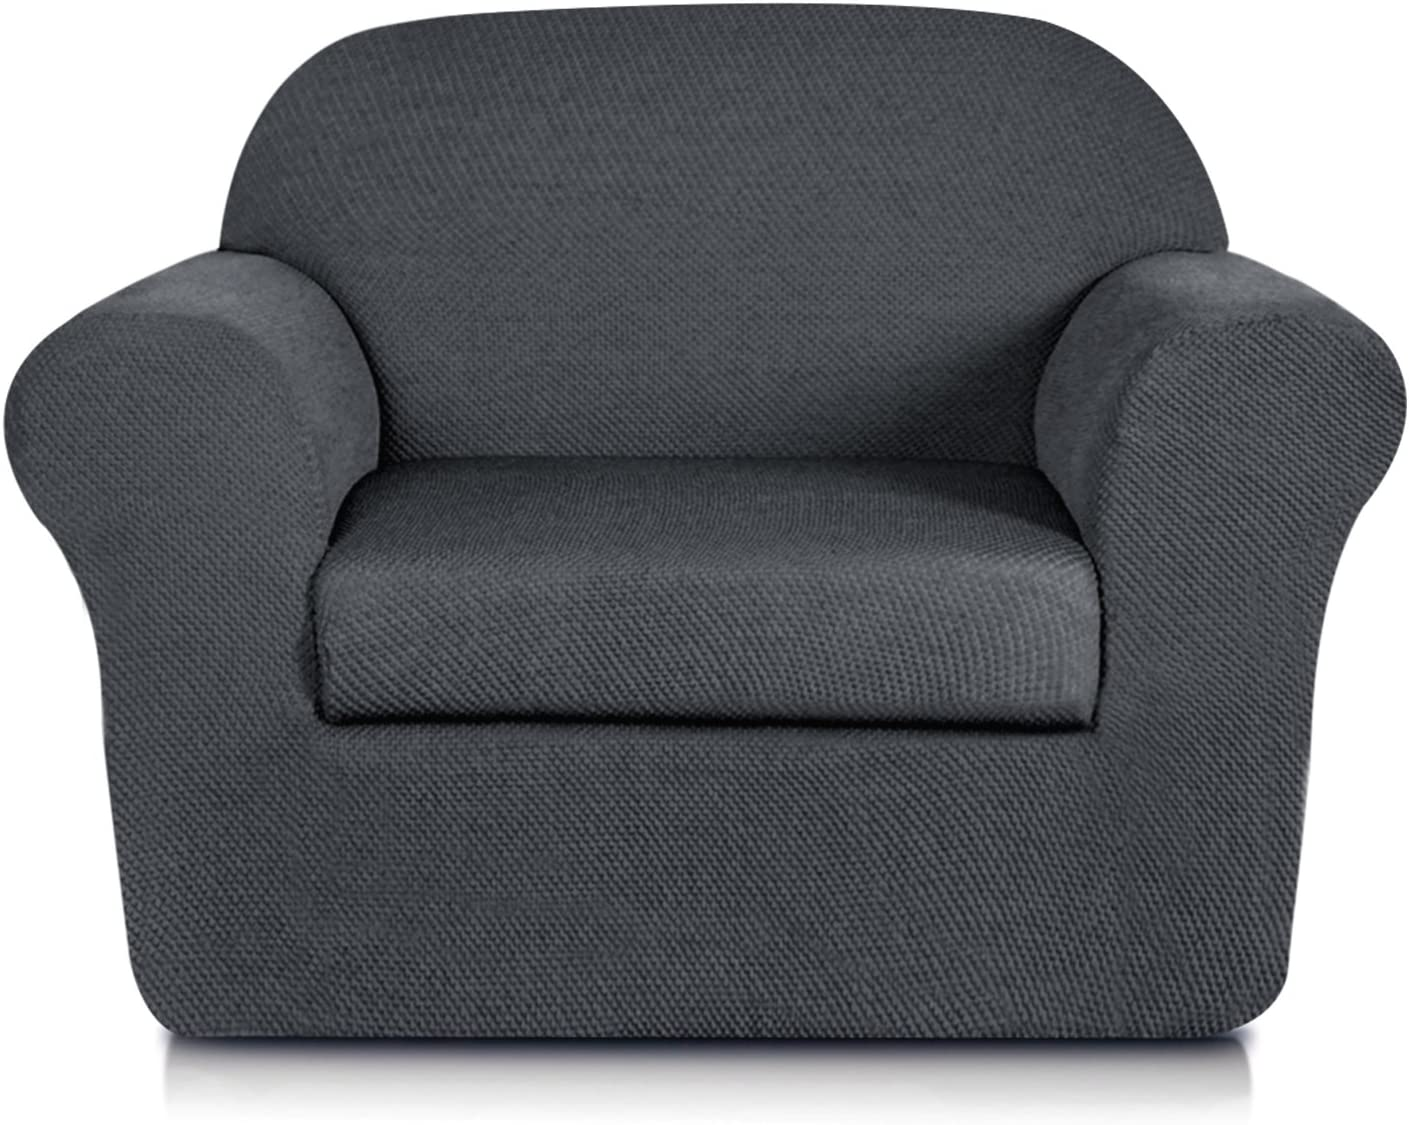 Special sale item subrtex 2-Piece Spandex We OFFer at cheap prices Stretch Sofa Chair Ja Slipcovers 2pcs